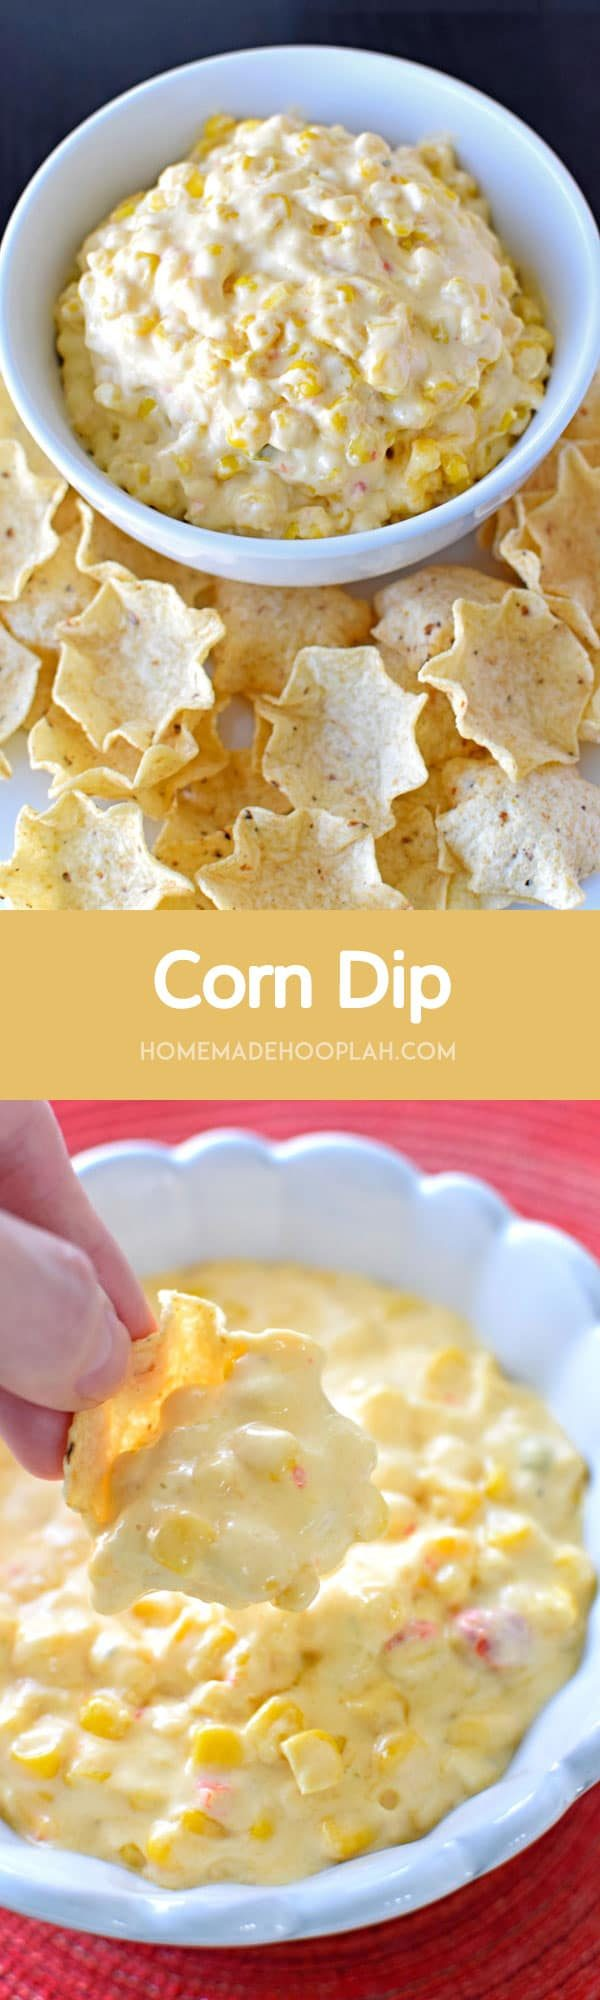 Corn Dip! A Mexican-style corn dip that's addictively good and that you can throw together in just 15 minutes. Makes for a perfect party snack!  HomemadeHooplah.com